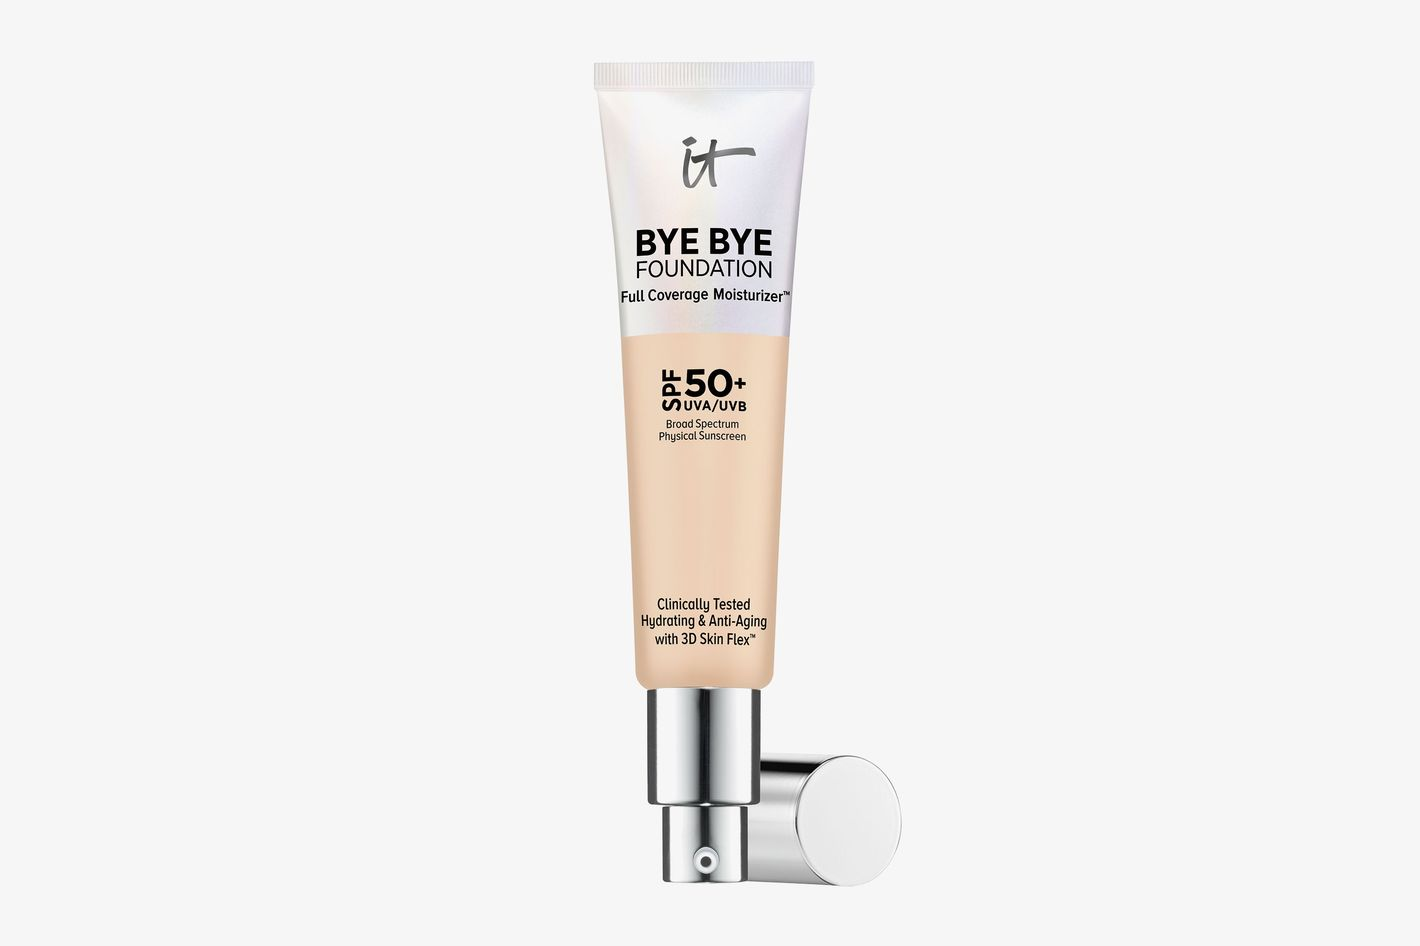 Bye Bye Foundation Full Coverage Moisturizer with SPF 50+ Light